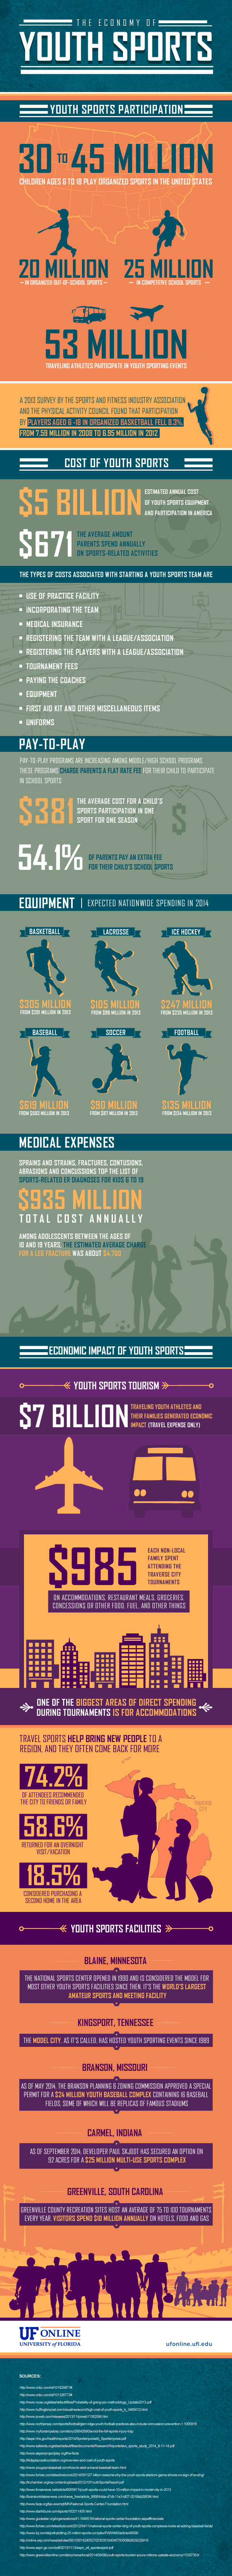 UF Online Infographic: The Economy of Youth Sports